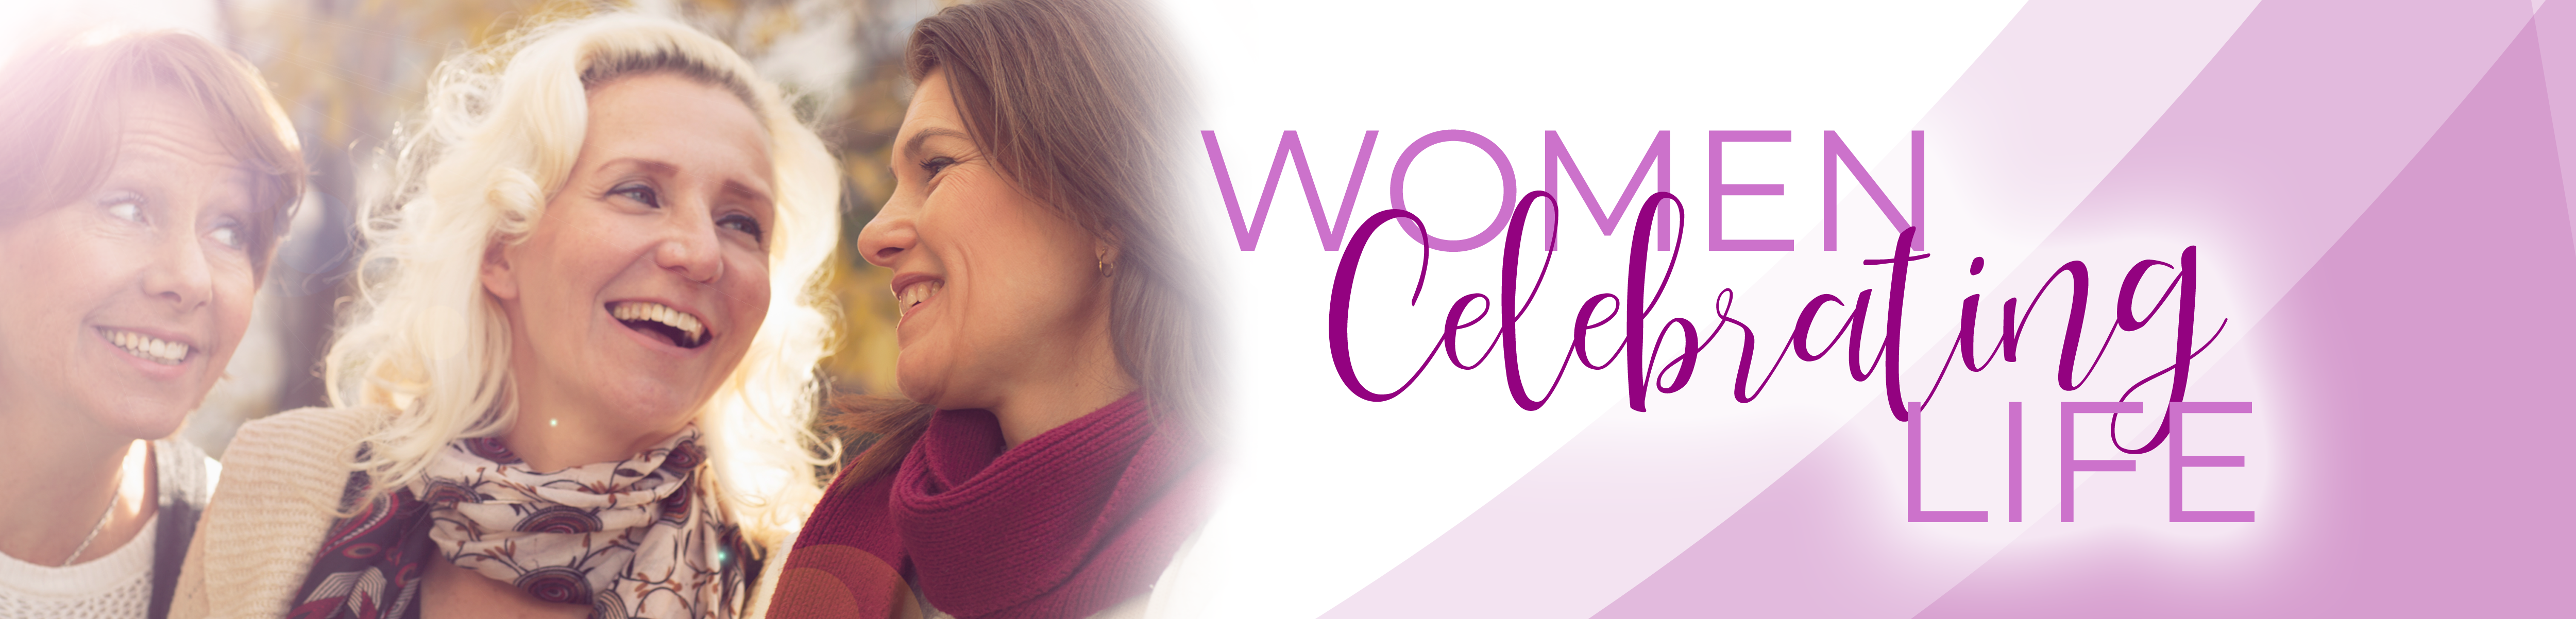 WCL site banner